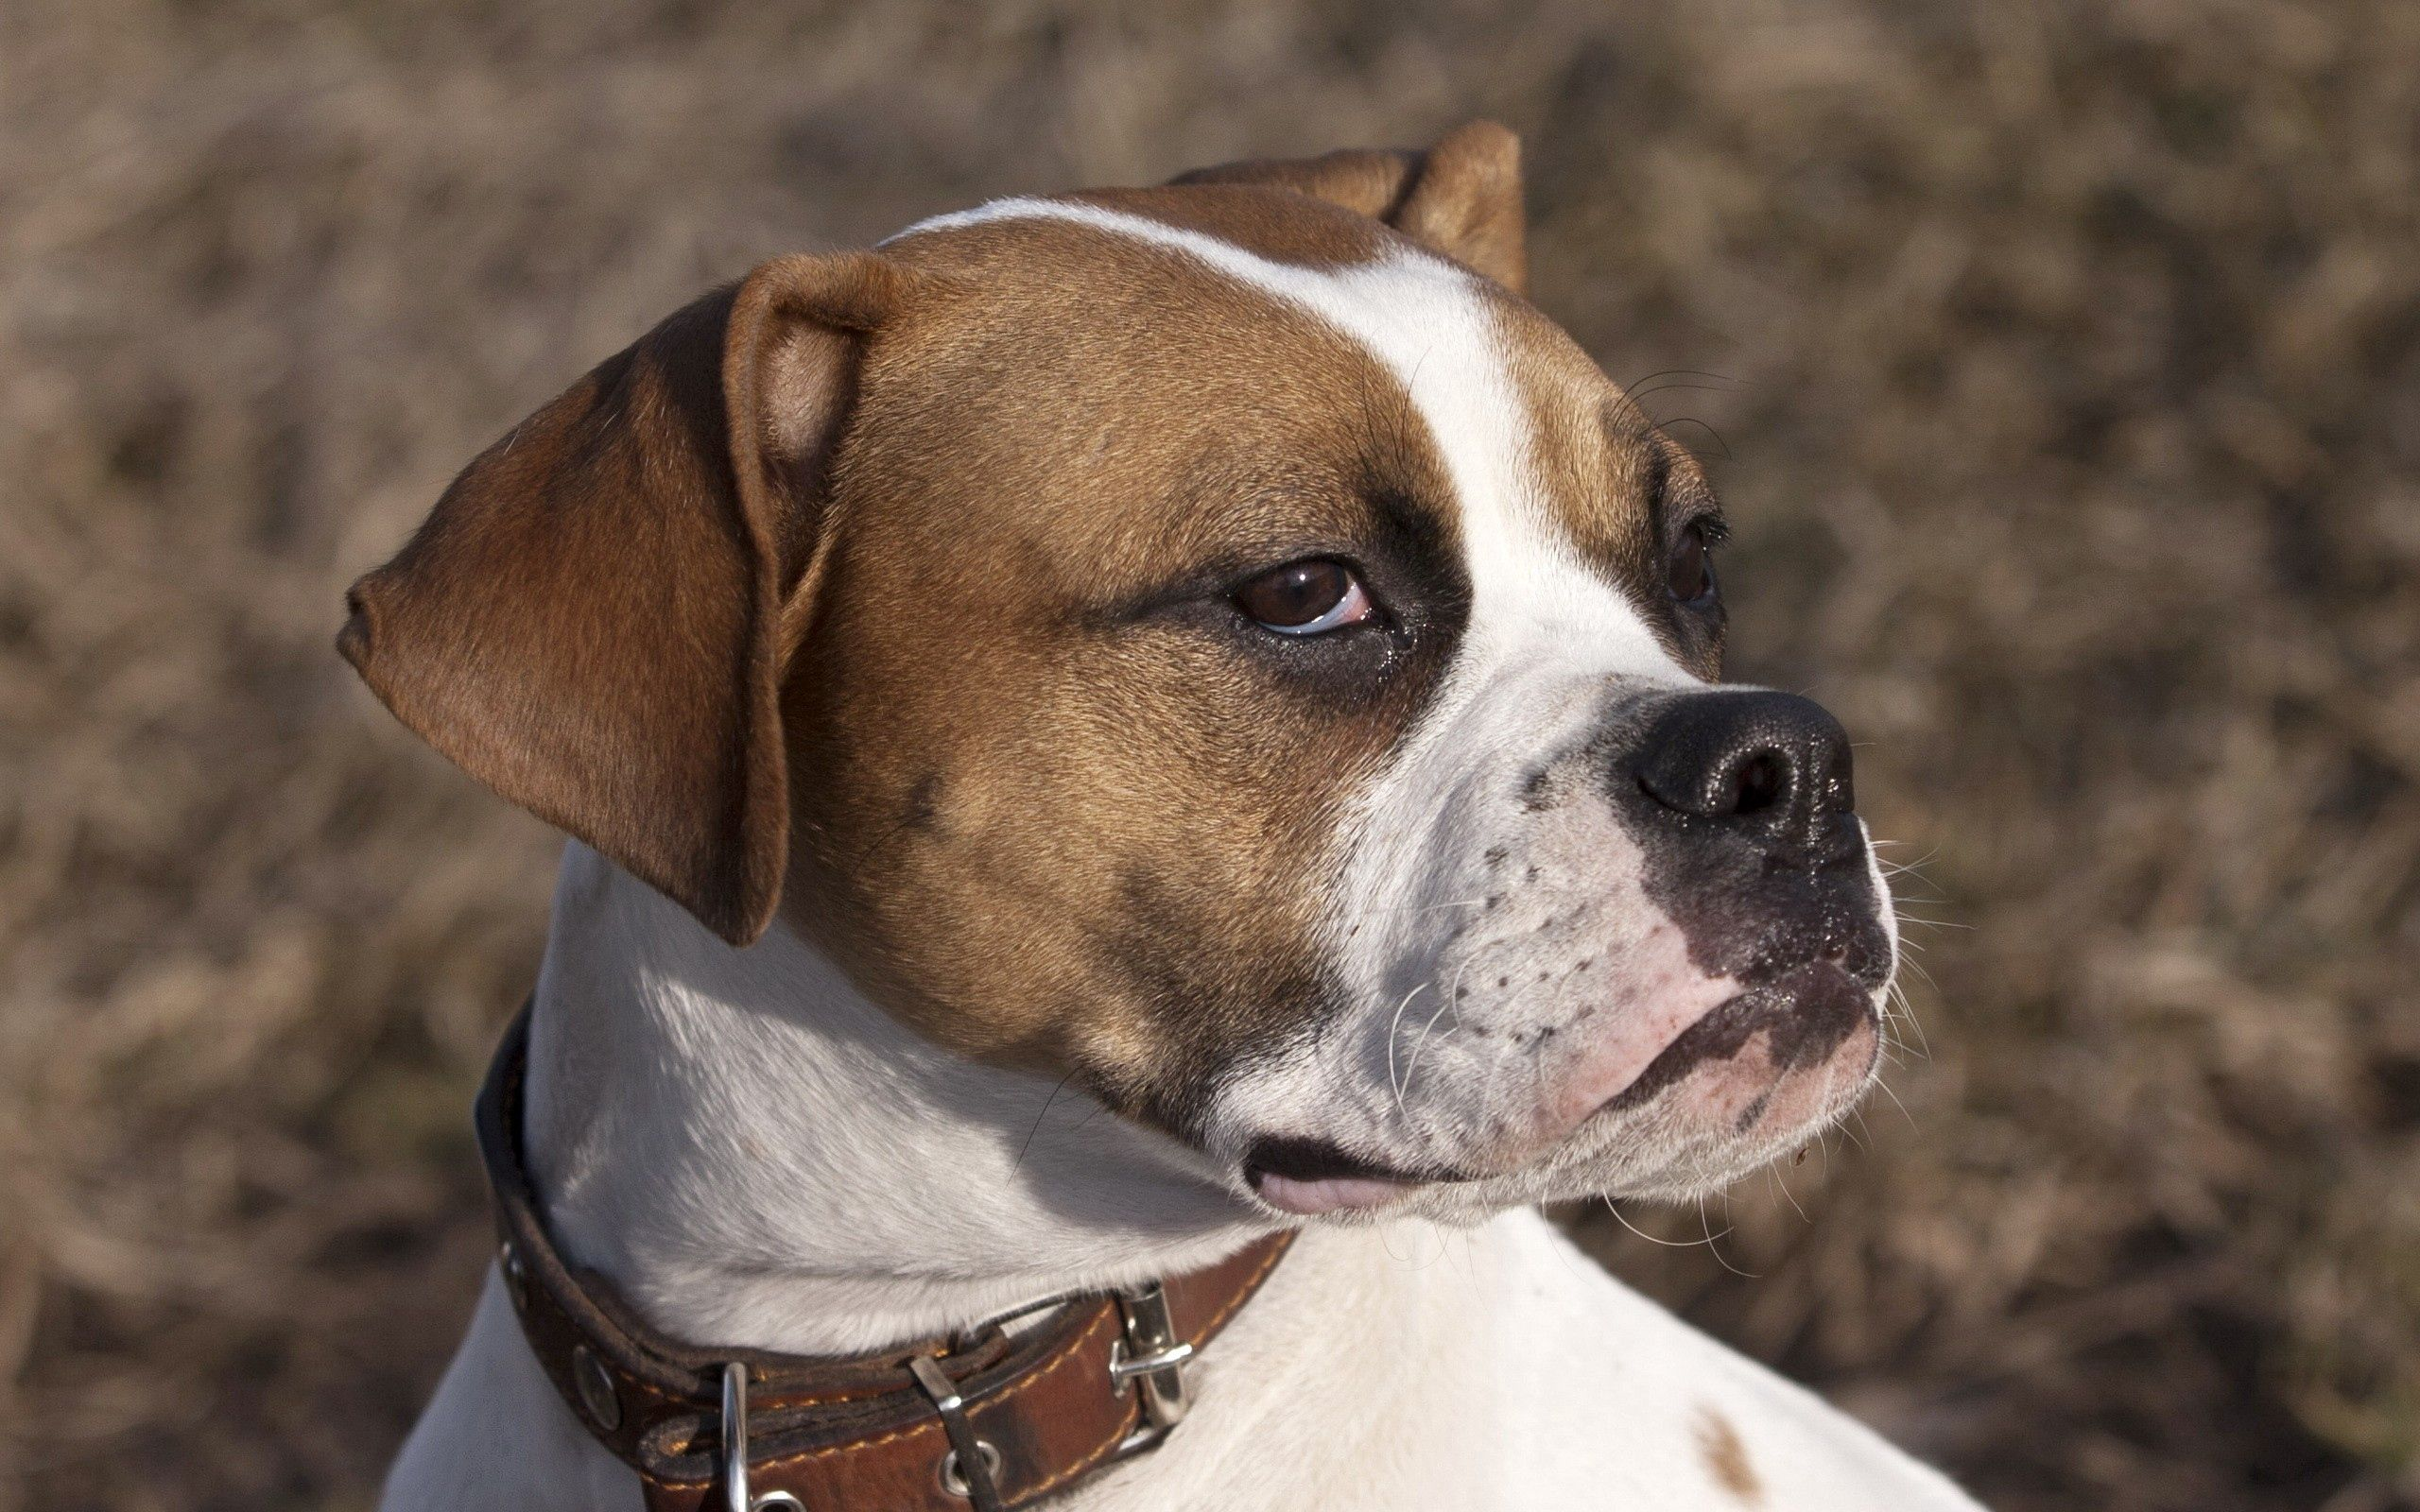 148566 download wallpaper Animals, Dog, Muzzle, Collar, Sight, Opinion screensavers and pictures for free